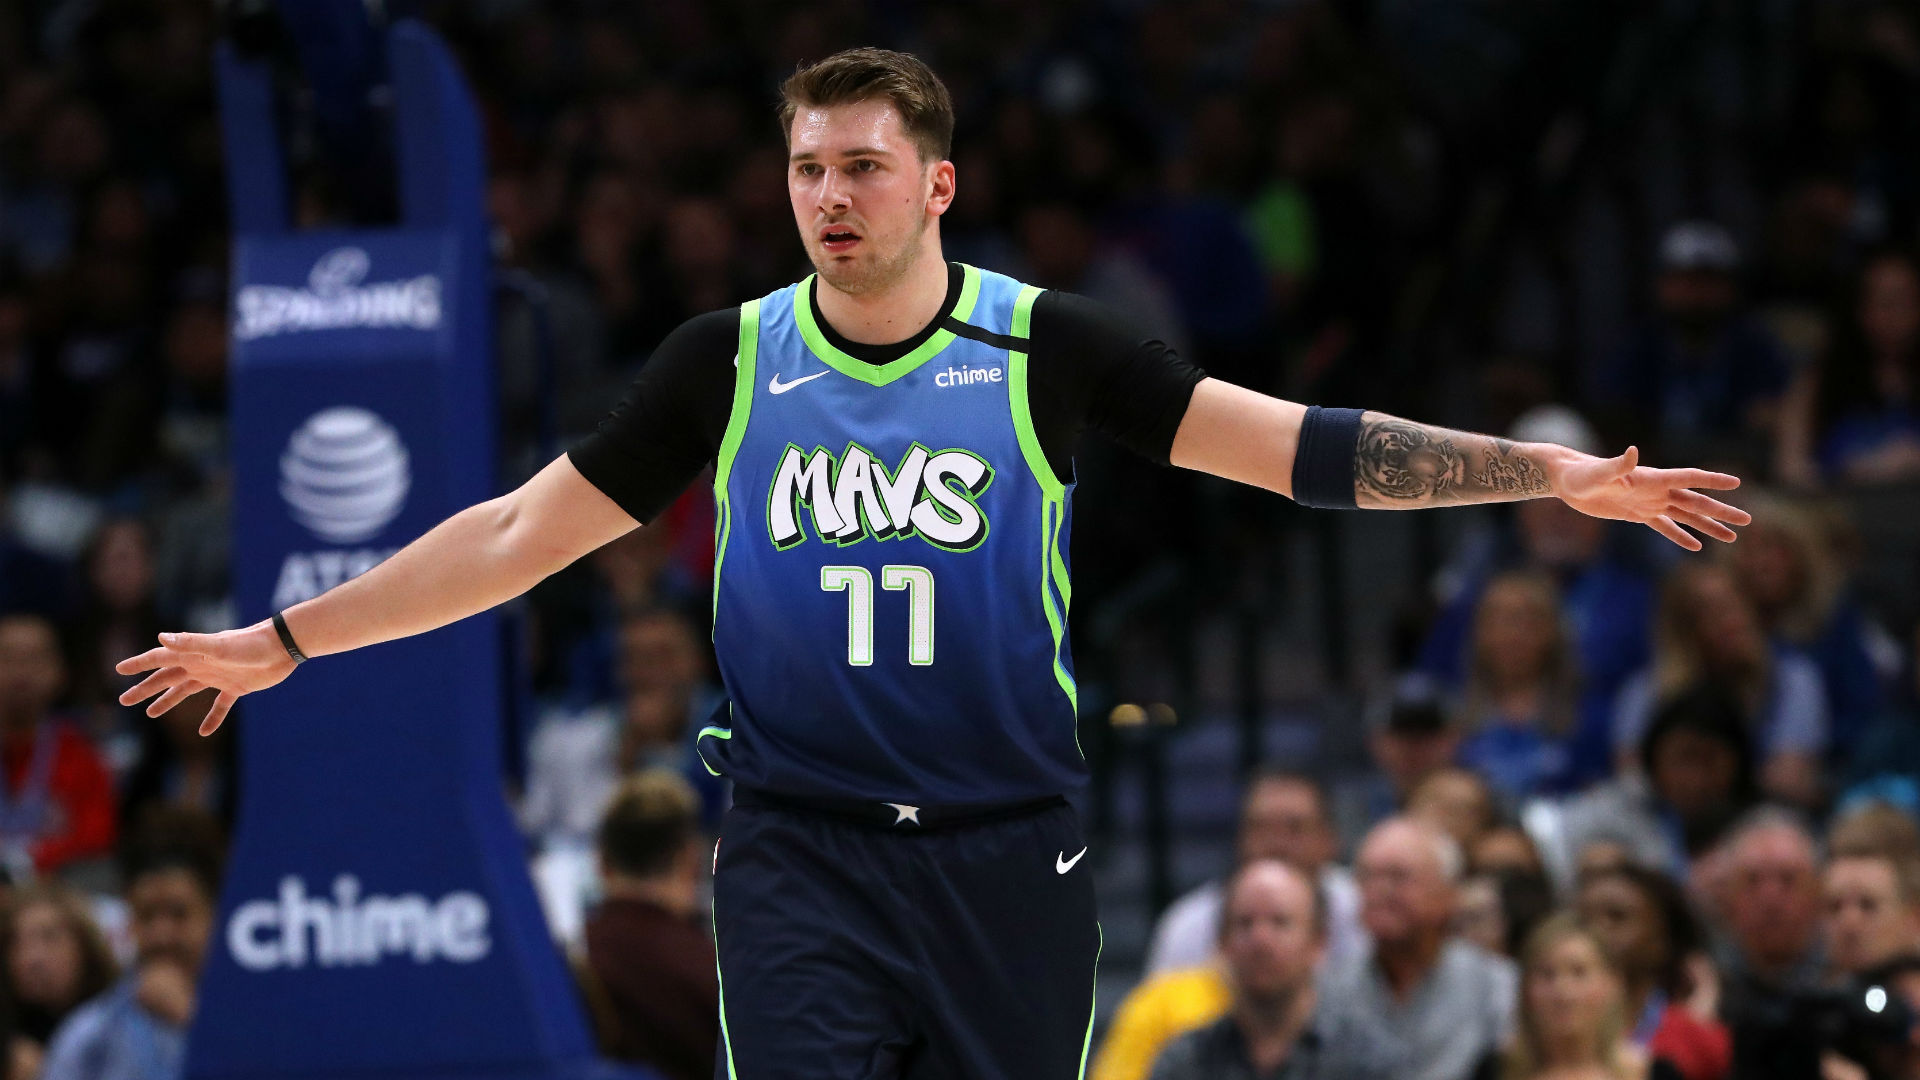 Luka Doncic was relieved it was his left thumb rather than the right that took two blows during a defeat of the Spurs.